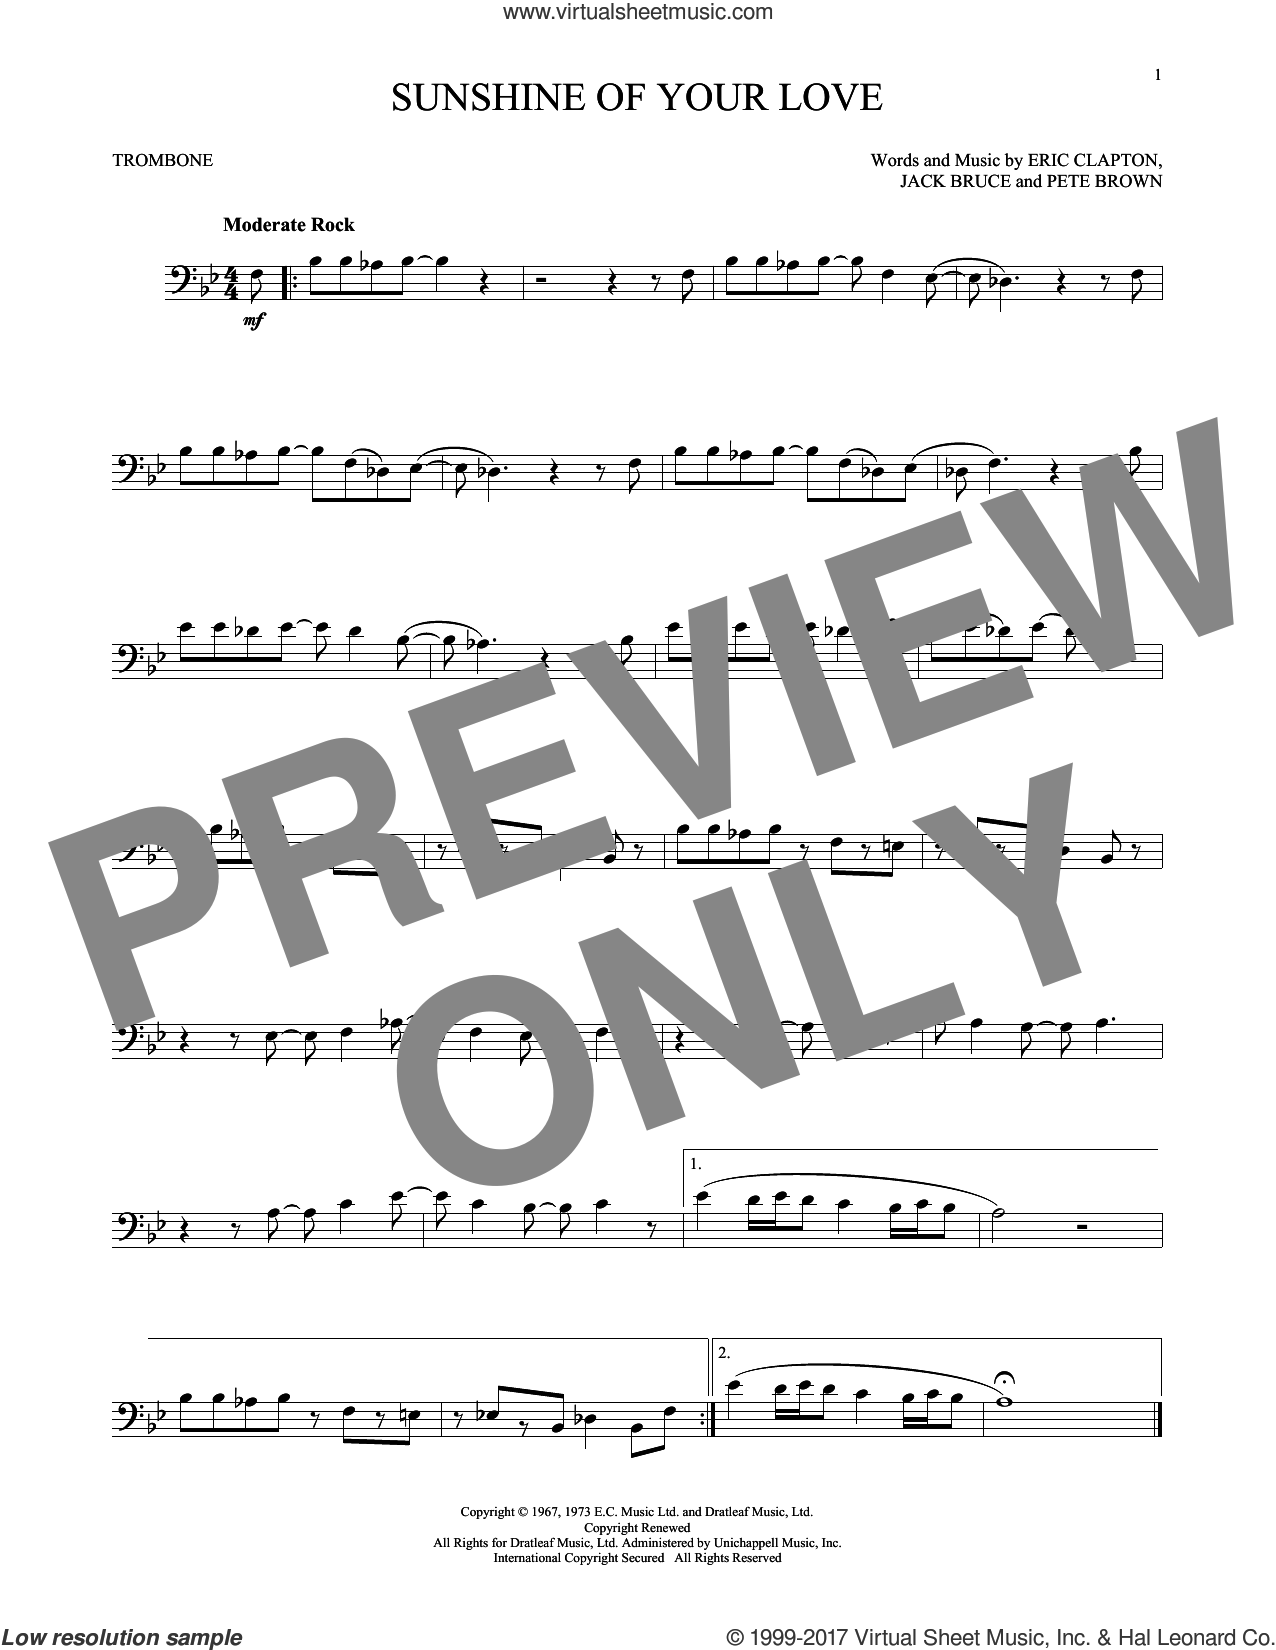 Sunshine Of Your Love sheet music for trombone solo by Cream, Eric Clapton, Jack Bruce and Pete Brown, intermediate